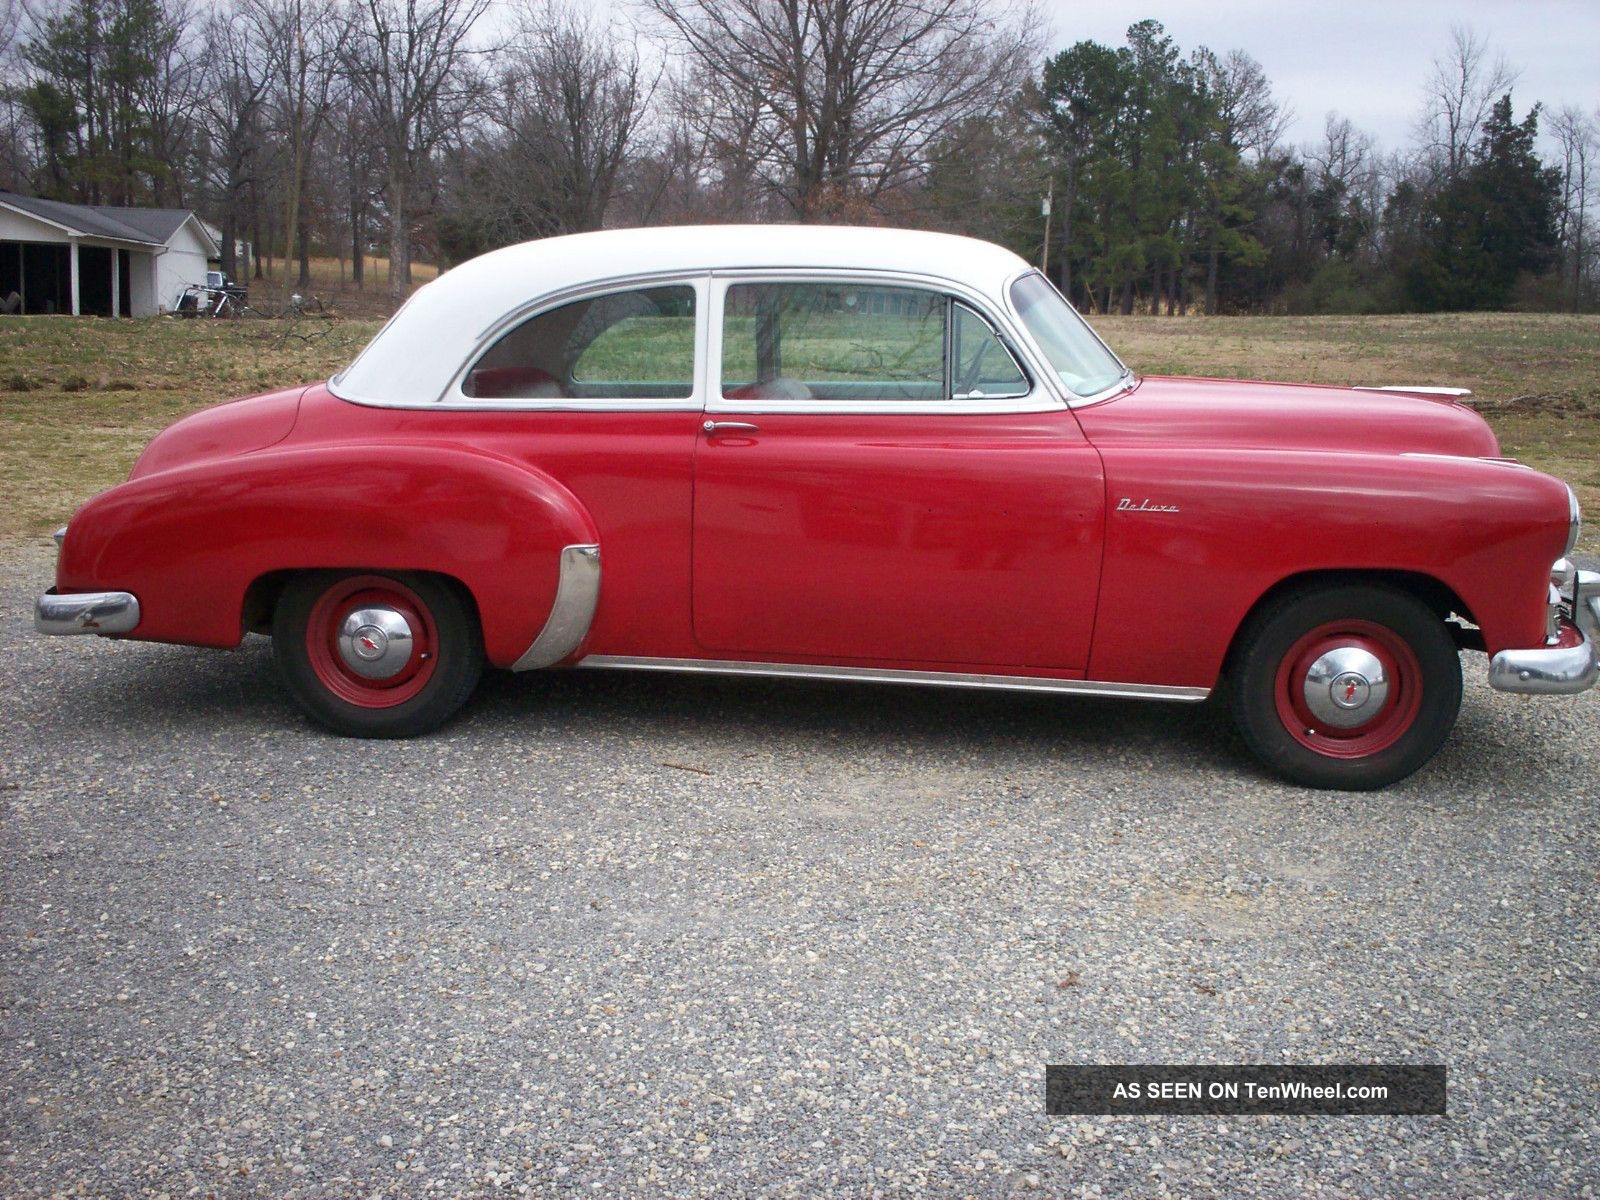 1950 Chevy 2 Door Sedan For Sale as well 1963 Gmc Truck Parts Wire Harness furthermore 1955 Chevy Truck Wiring Diagram also 1948 Ford F1 Pickup Wiring Diagram as well 1950 Studebaker Wiring Diagram. on 1949 studebaker wiring harness